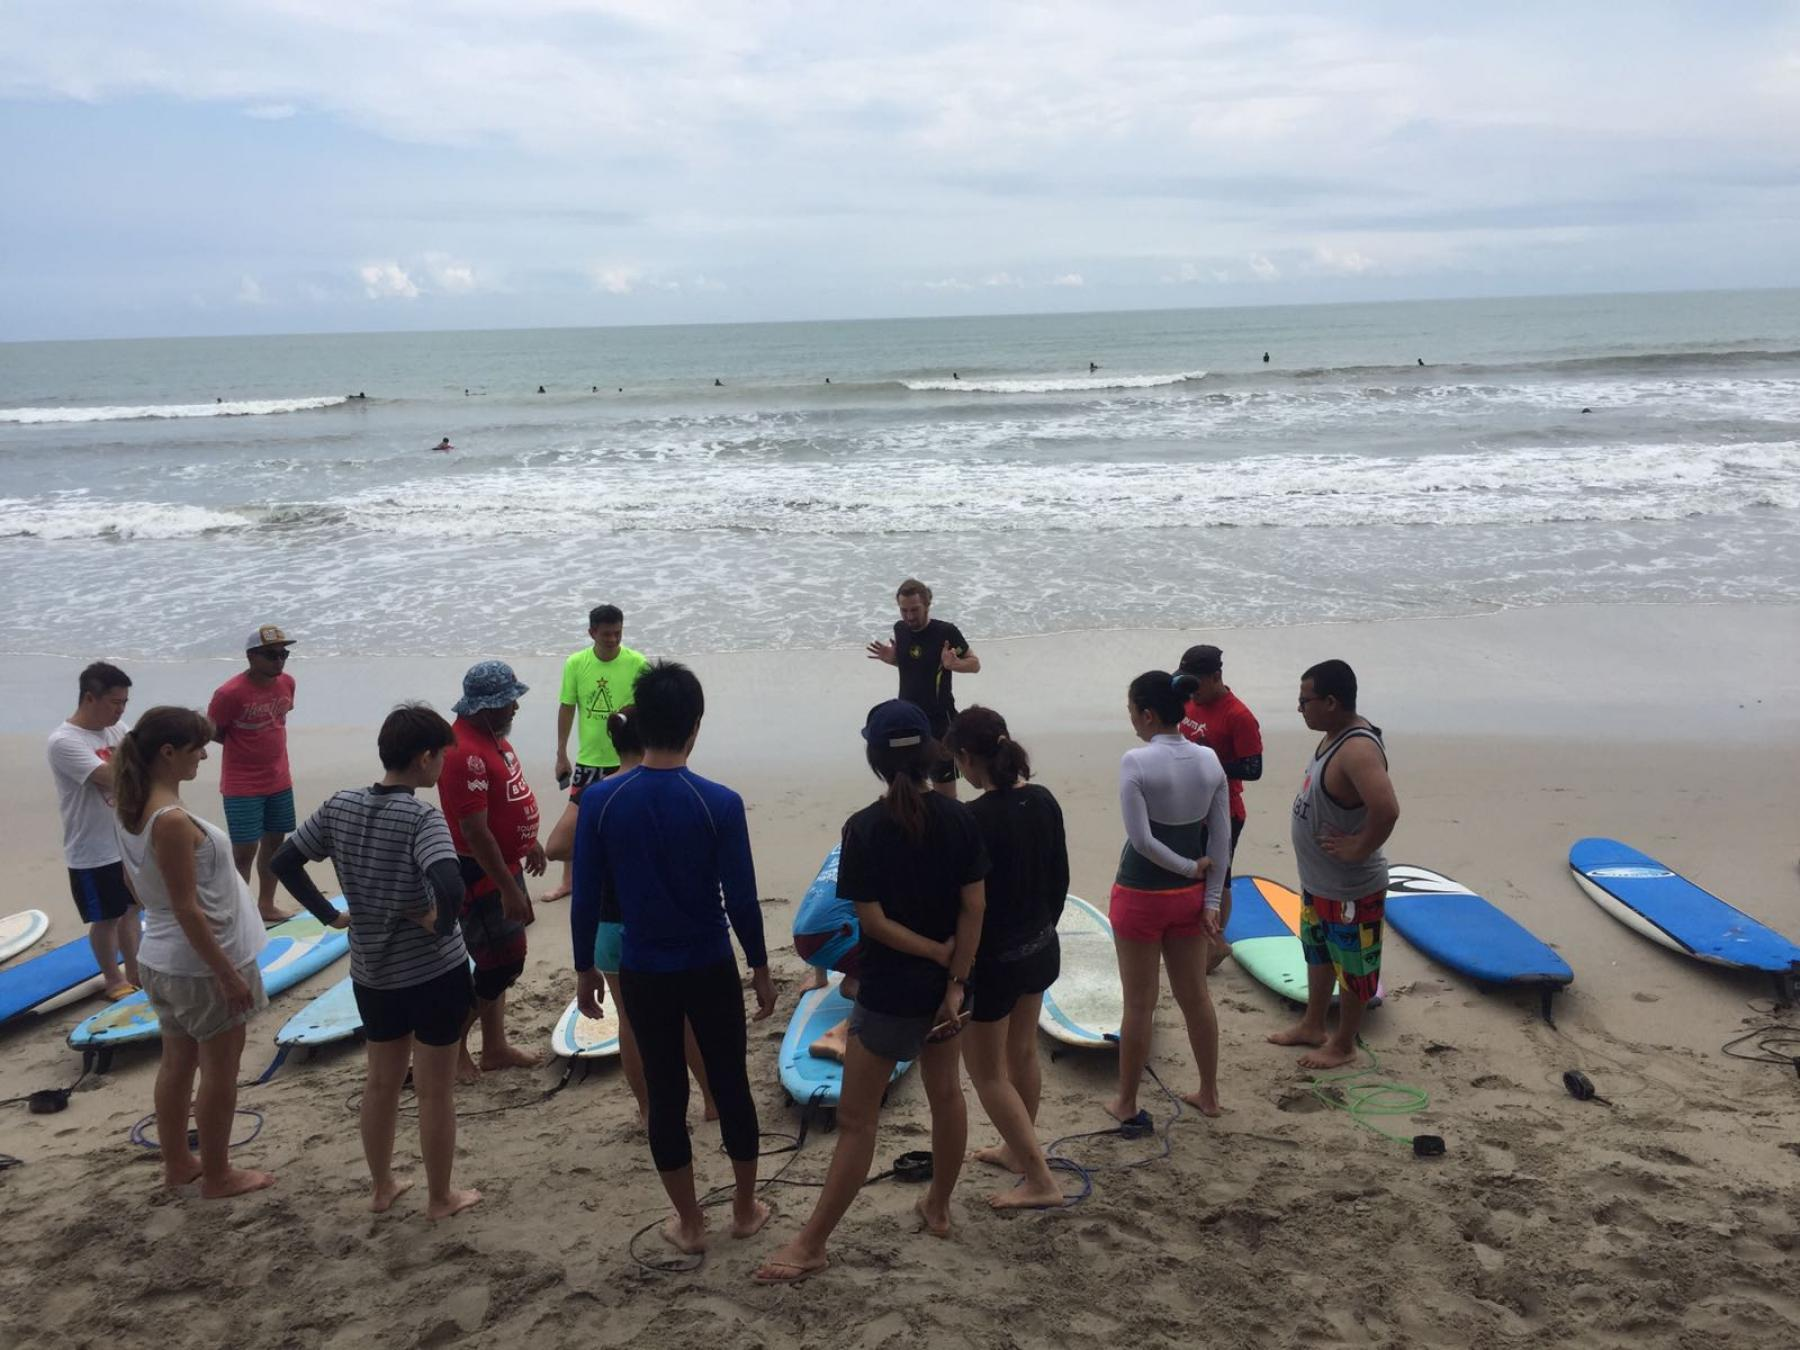 Let's learn surfing for a day (beginners welcome) - Jan 28  starting at Tanjung Sedeli Johor Malaysia